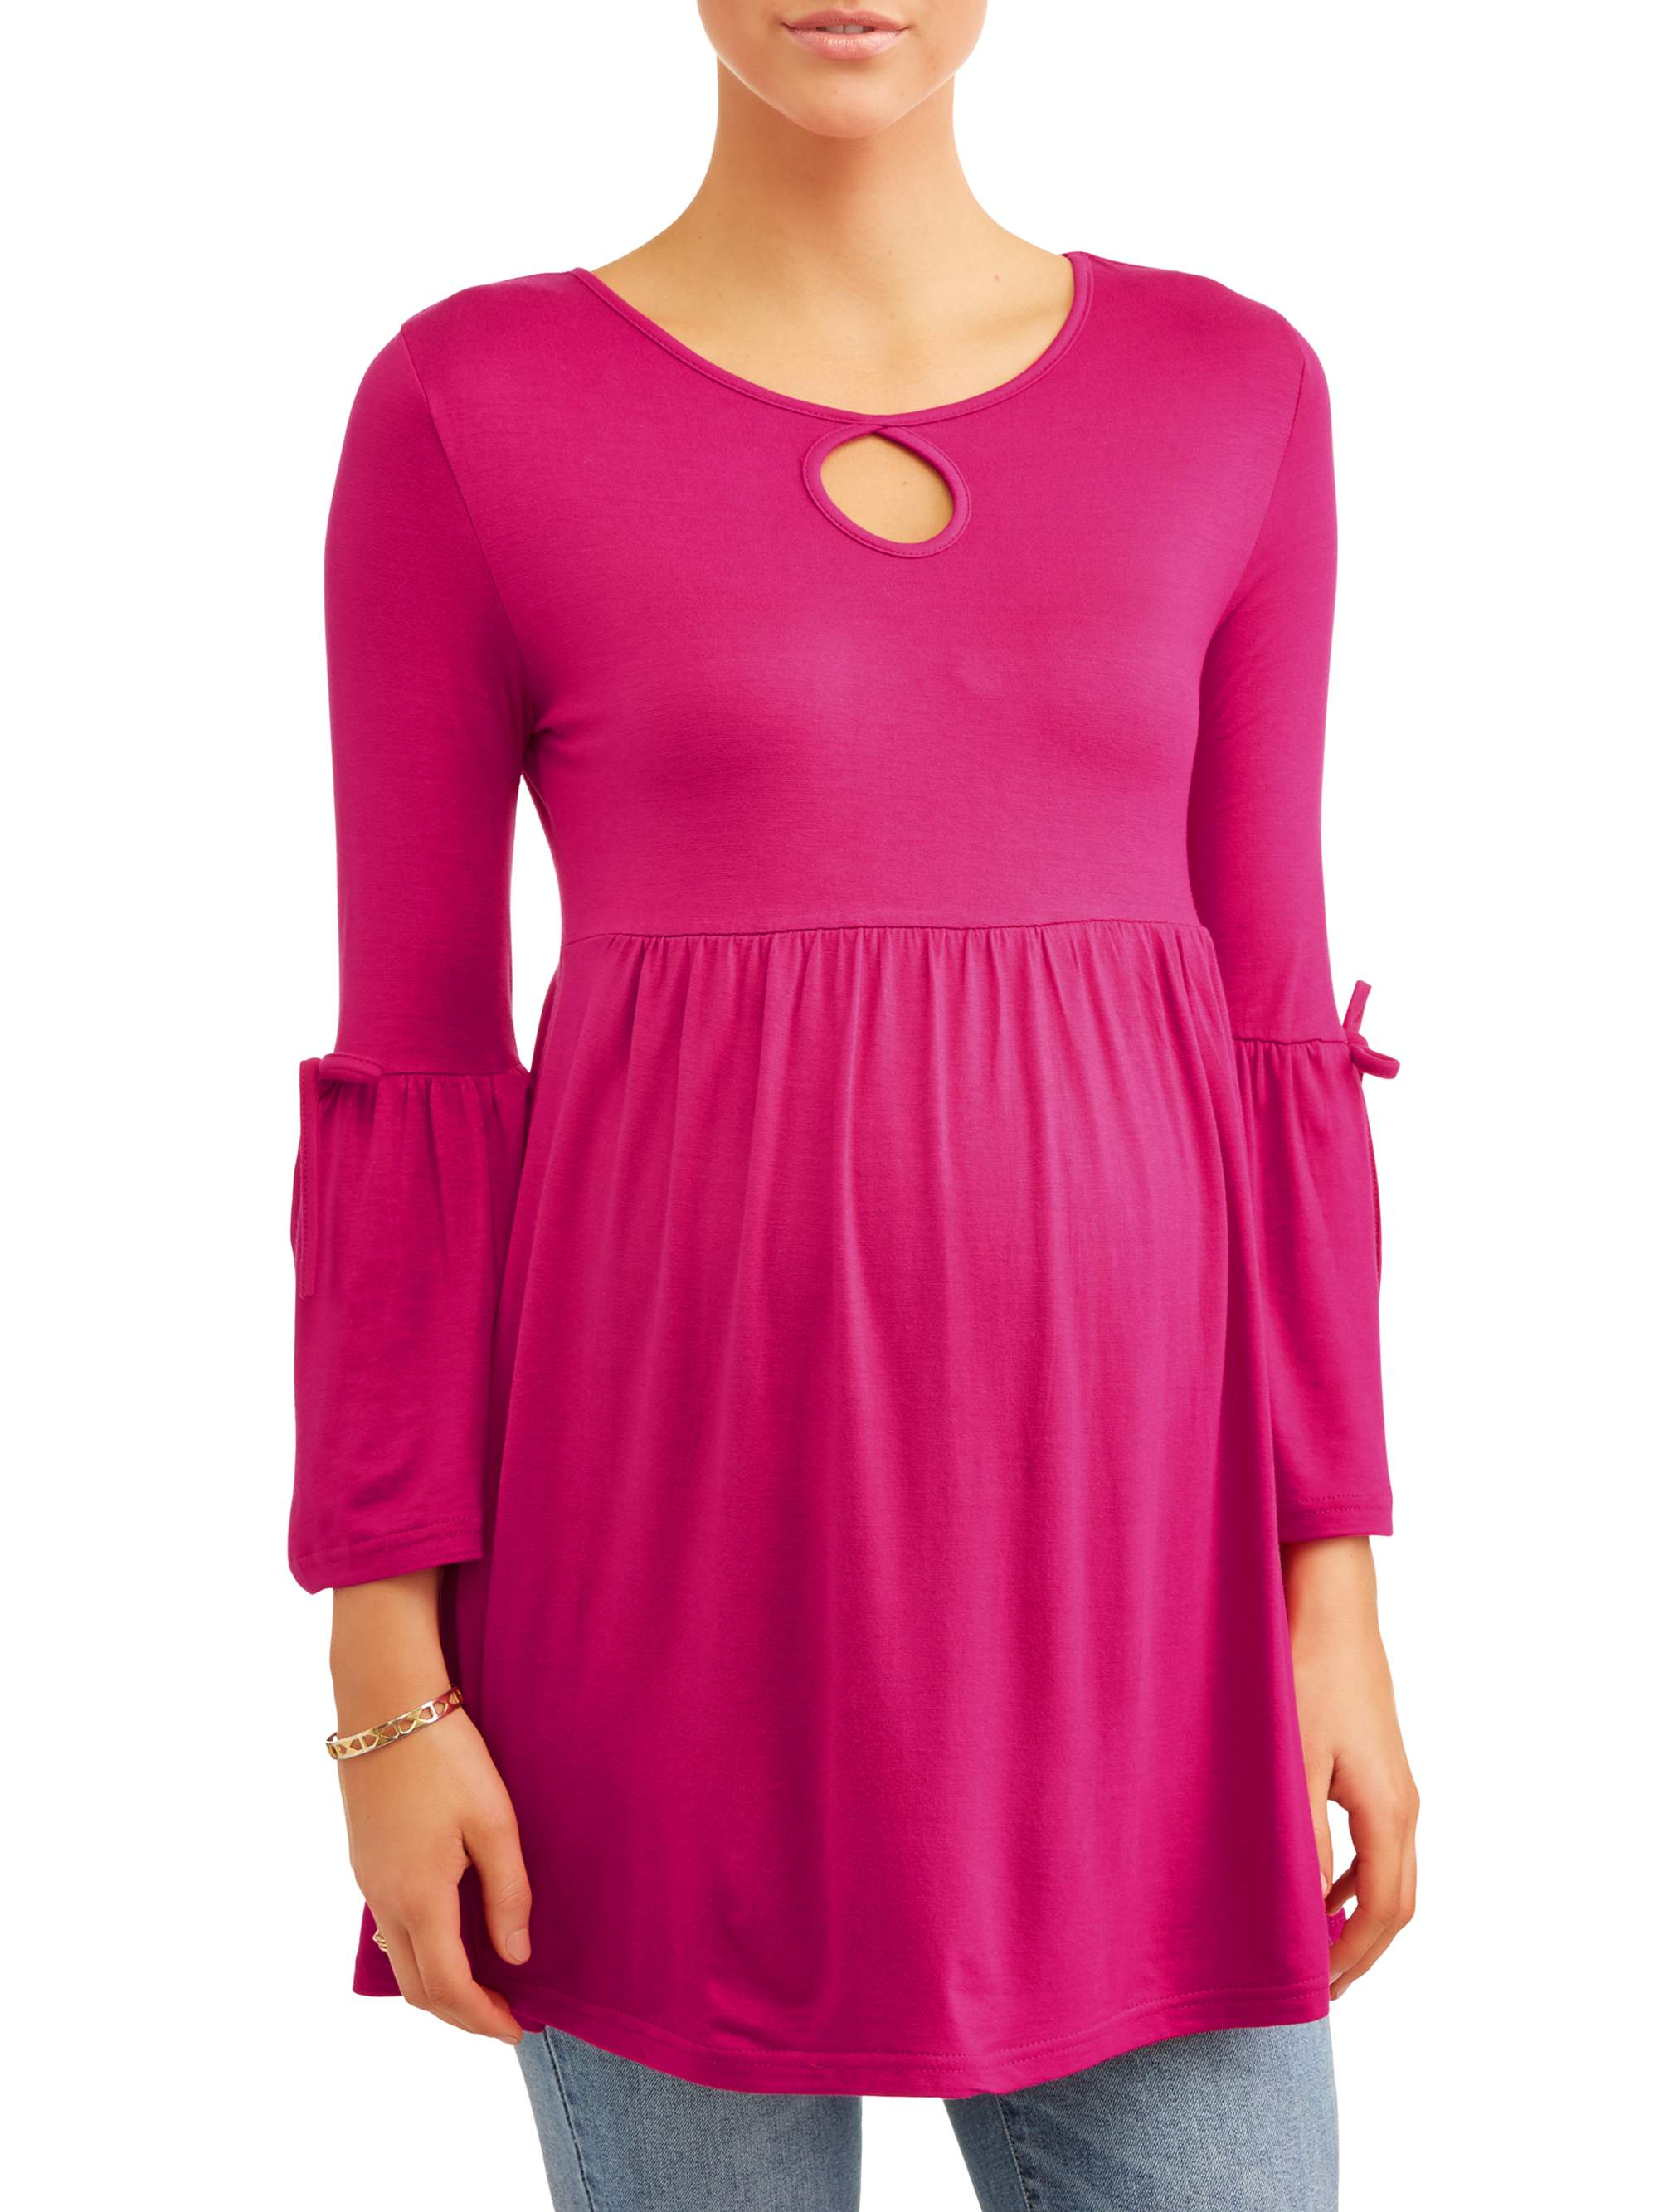 Maternity Key Hole Bell Sleeve Baby Doll Top - Available in Plus Sizes